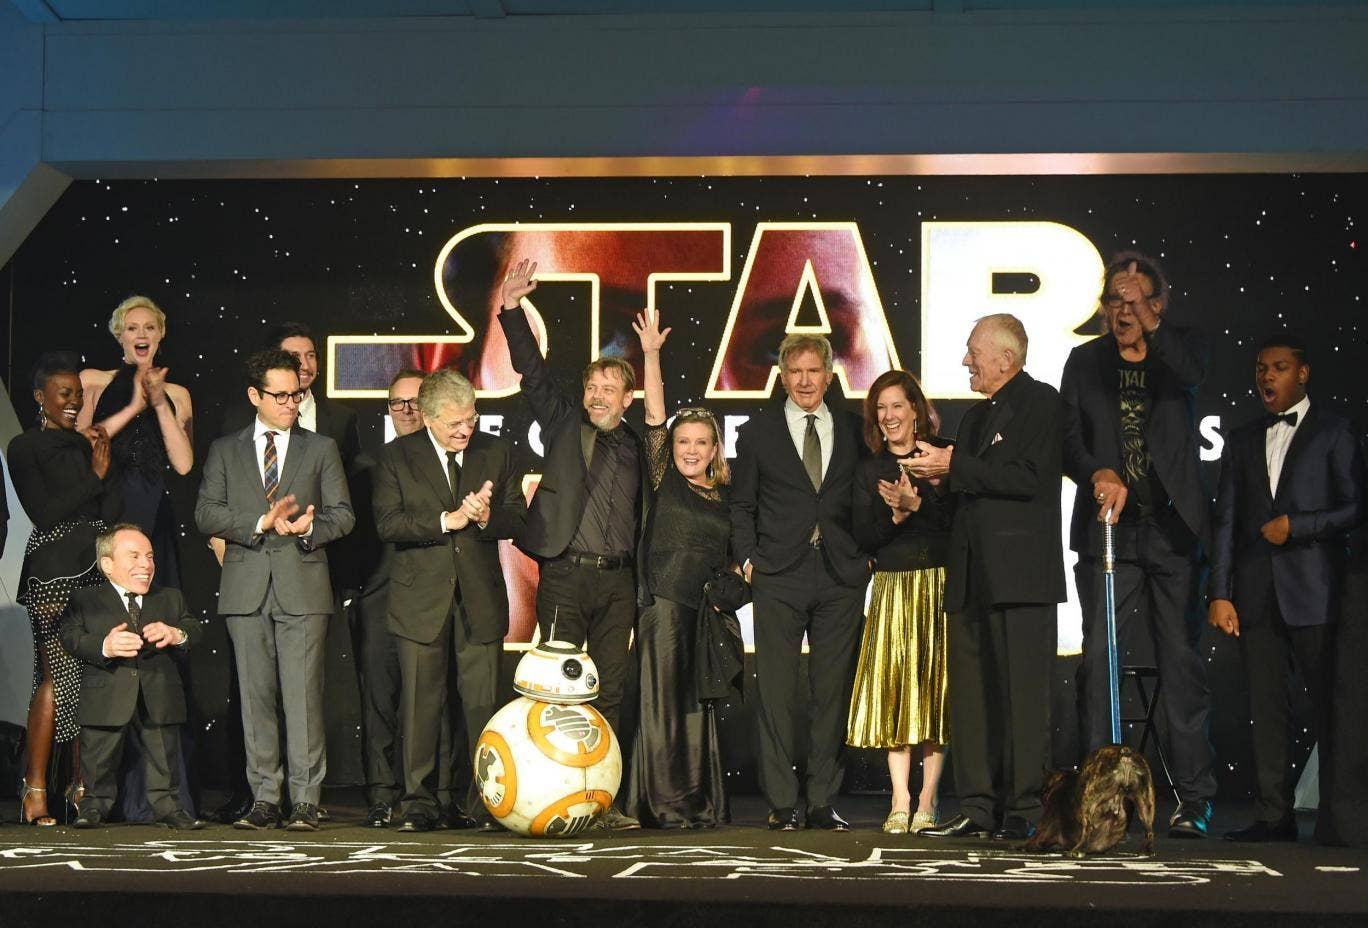 'Star Wars: The Force Awakens' is Nothing But a (Good) Popcorn Movie